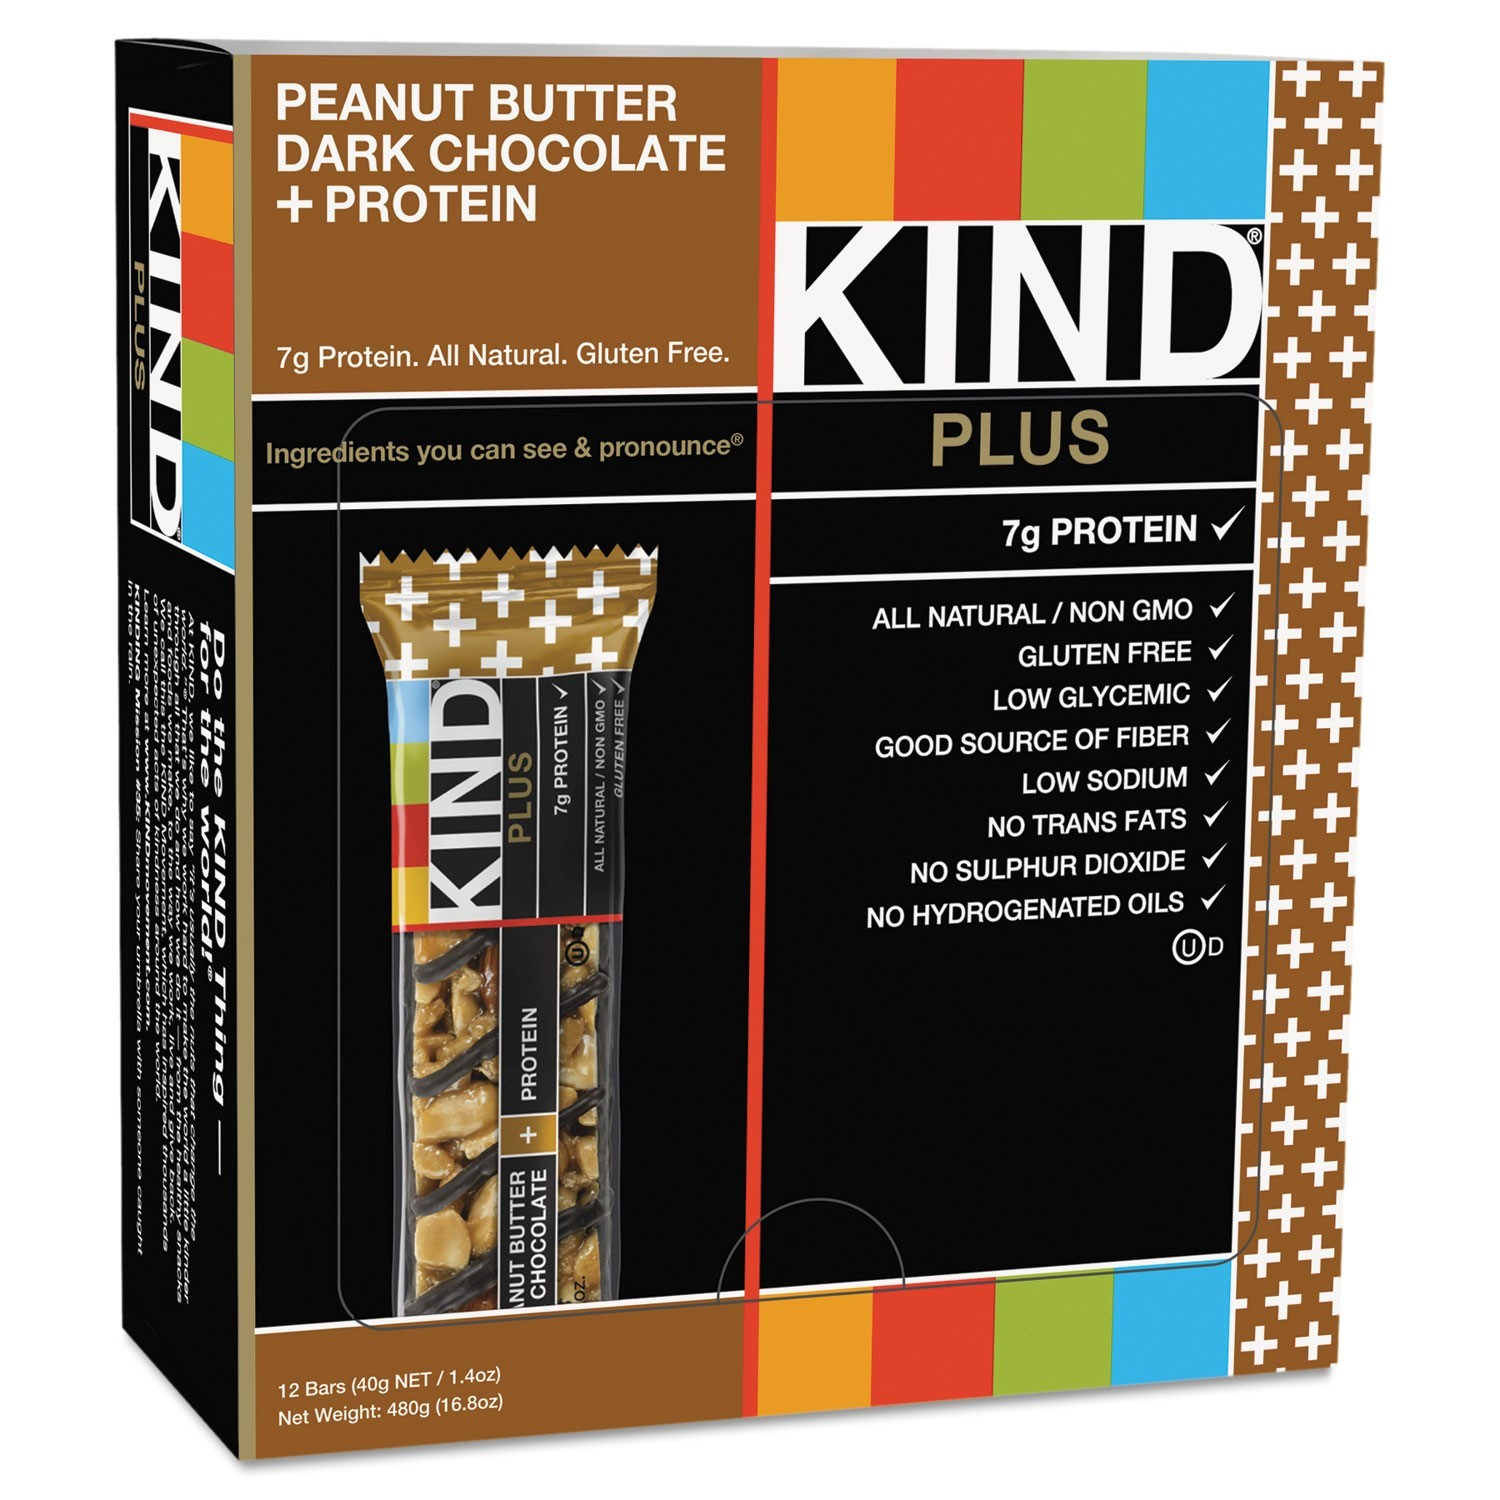 KIND Plus Nutrition Boost Bar, Peanut Butter Dark Chocolate/Protein, 1.4 oz, 12/Box